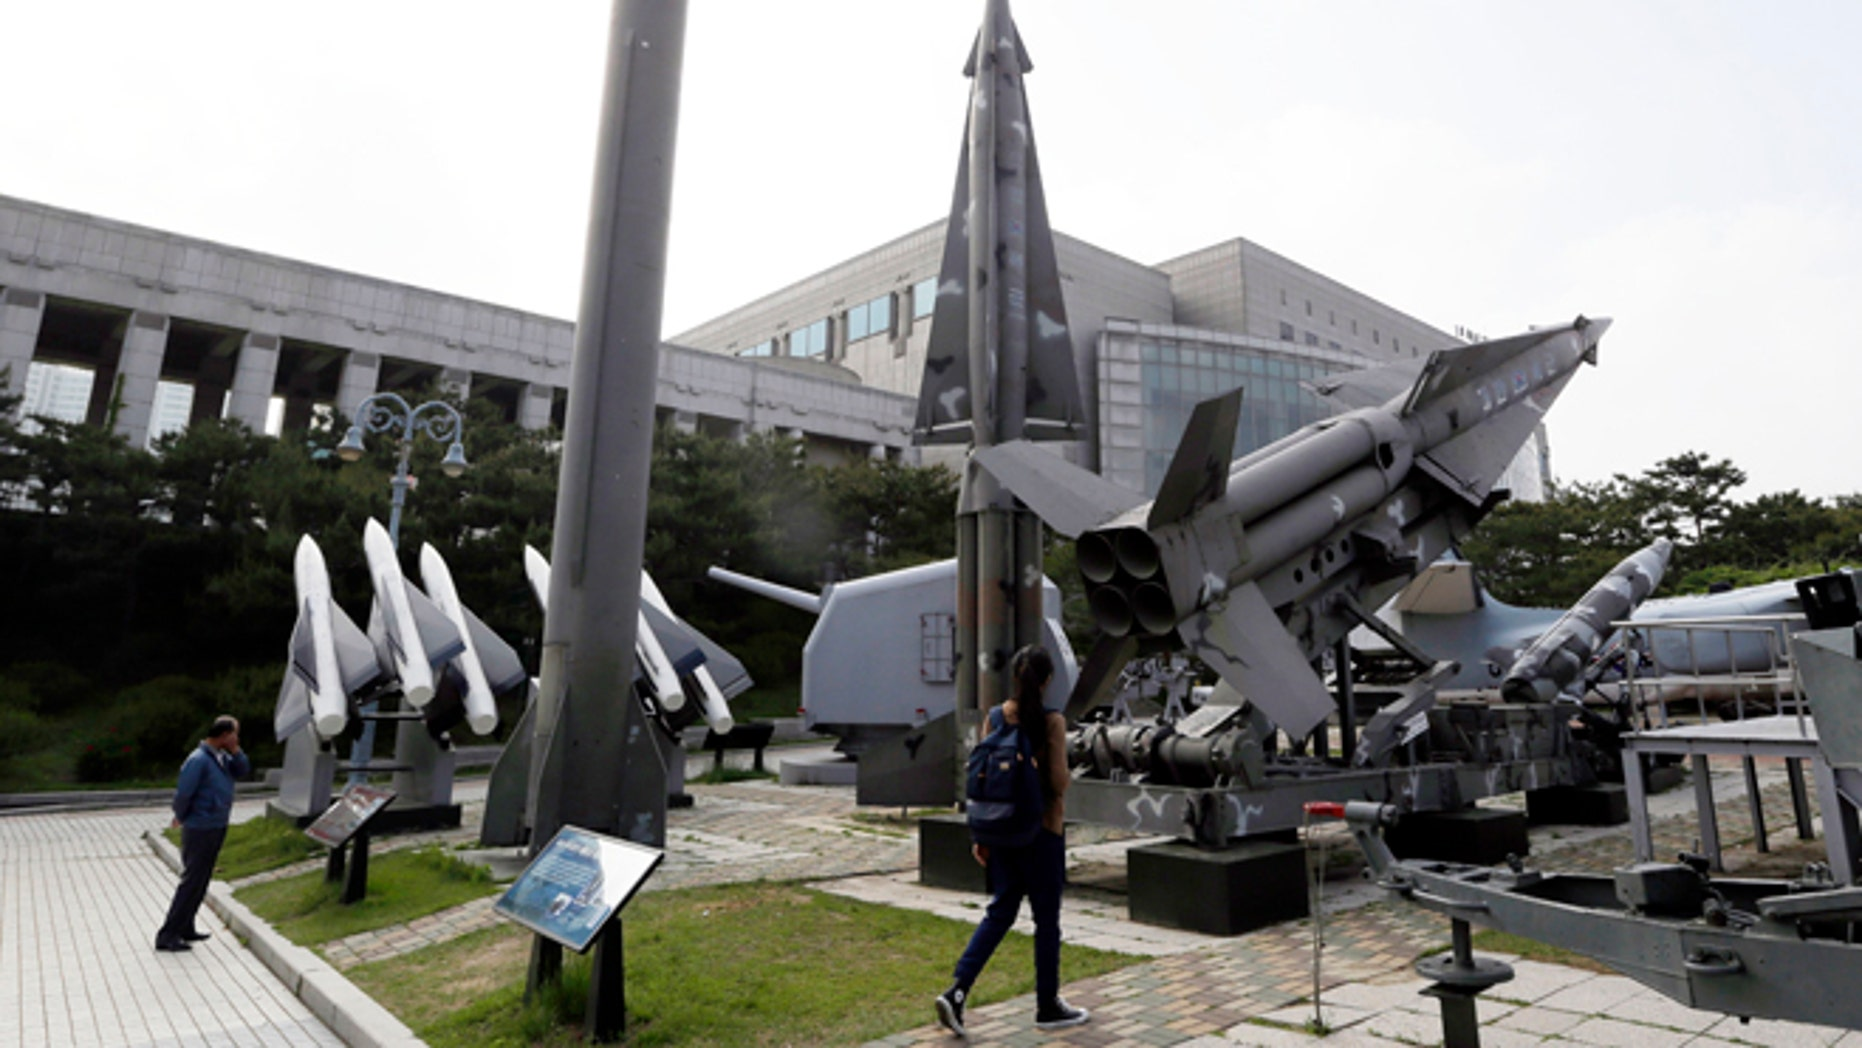 May 20, 2013: In this file photo, a mock Scud-B missile of North Korea, left, and other South Korean missiles are displayed at the Korea War Memorial Museum in Seoul, South Korea.